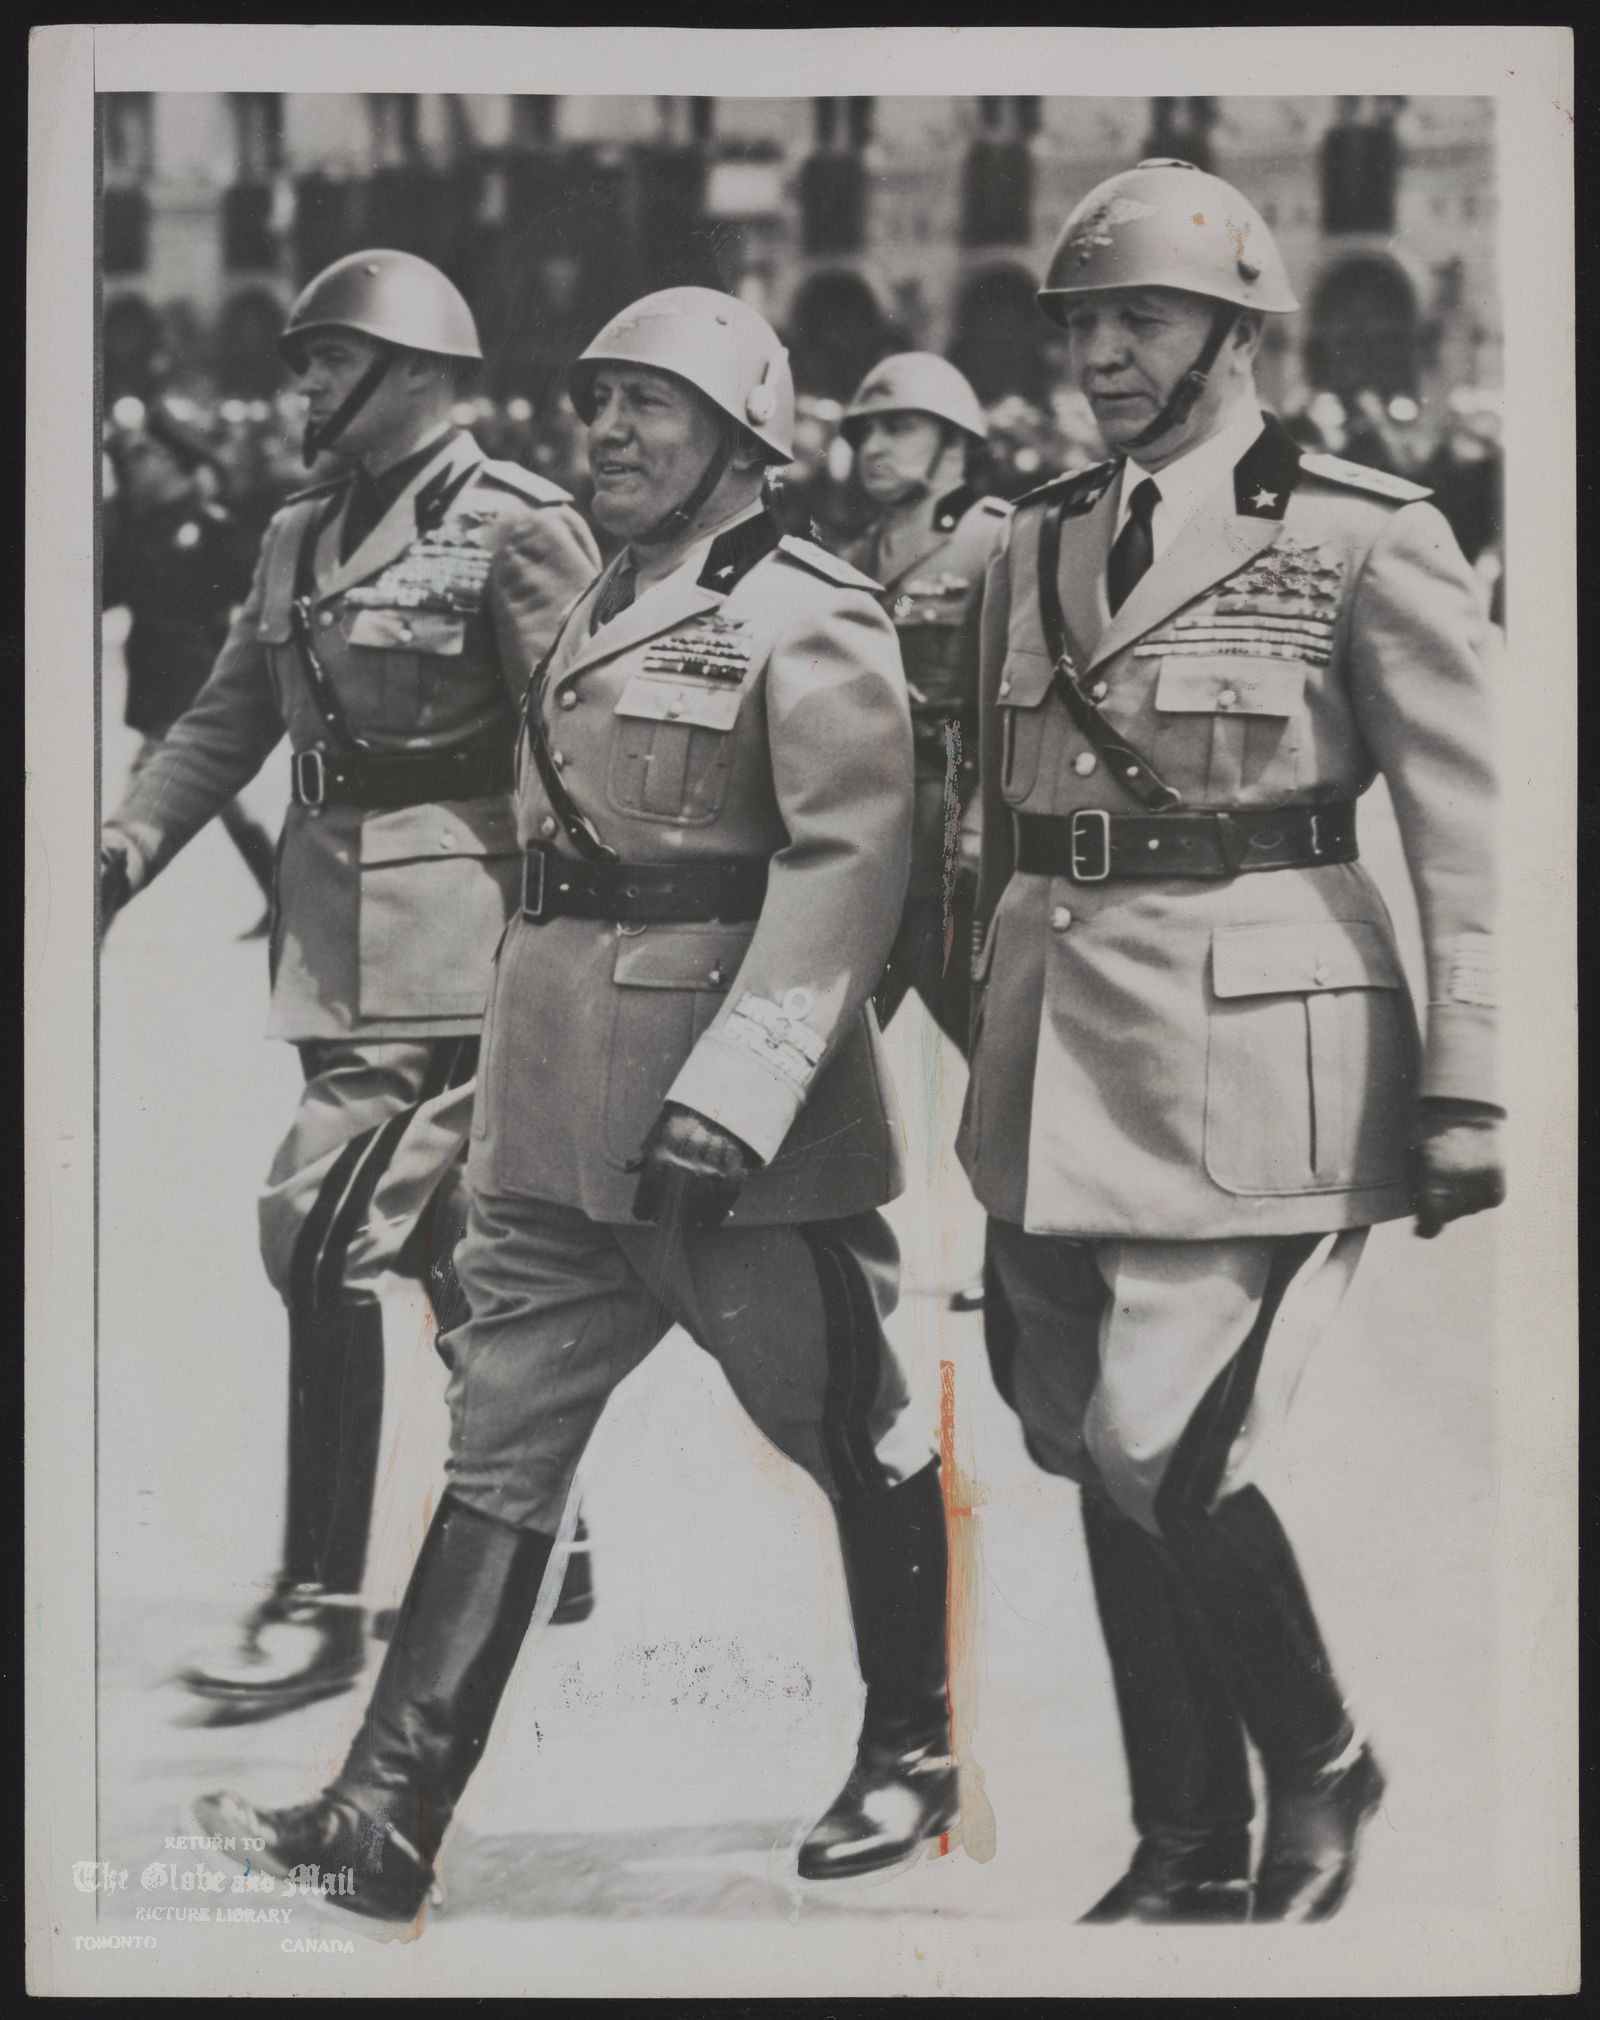 Benito MUSSOLINI, ITALY Associated Press Photo From New York Caution: Use Credit MUSSOLINI OUT, BADOGLIO IN BENITO MUSSOLINI (CENTER) WALKED WITH MARSHAL PIETRO BADOGLIO (RIGHT) AND FASCIST SECRETARY ETTOR MUTI (LEFT) AFTER AN ARMY REVIEW IN 1940. THE ROME RADIO ANNOUNCED JULY 25 THAT BADOGLIO HAD SUCCEEDED MUSSOLINI AS PRIME MINISTER OF ITALY. Associated Press Photo 7/25/43 RJB 605p FLS ABC NYC NRSL NICK GD SU MON TorG&M NYT TMO LON MEX BAIRES SABC 71